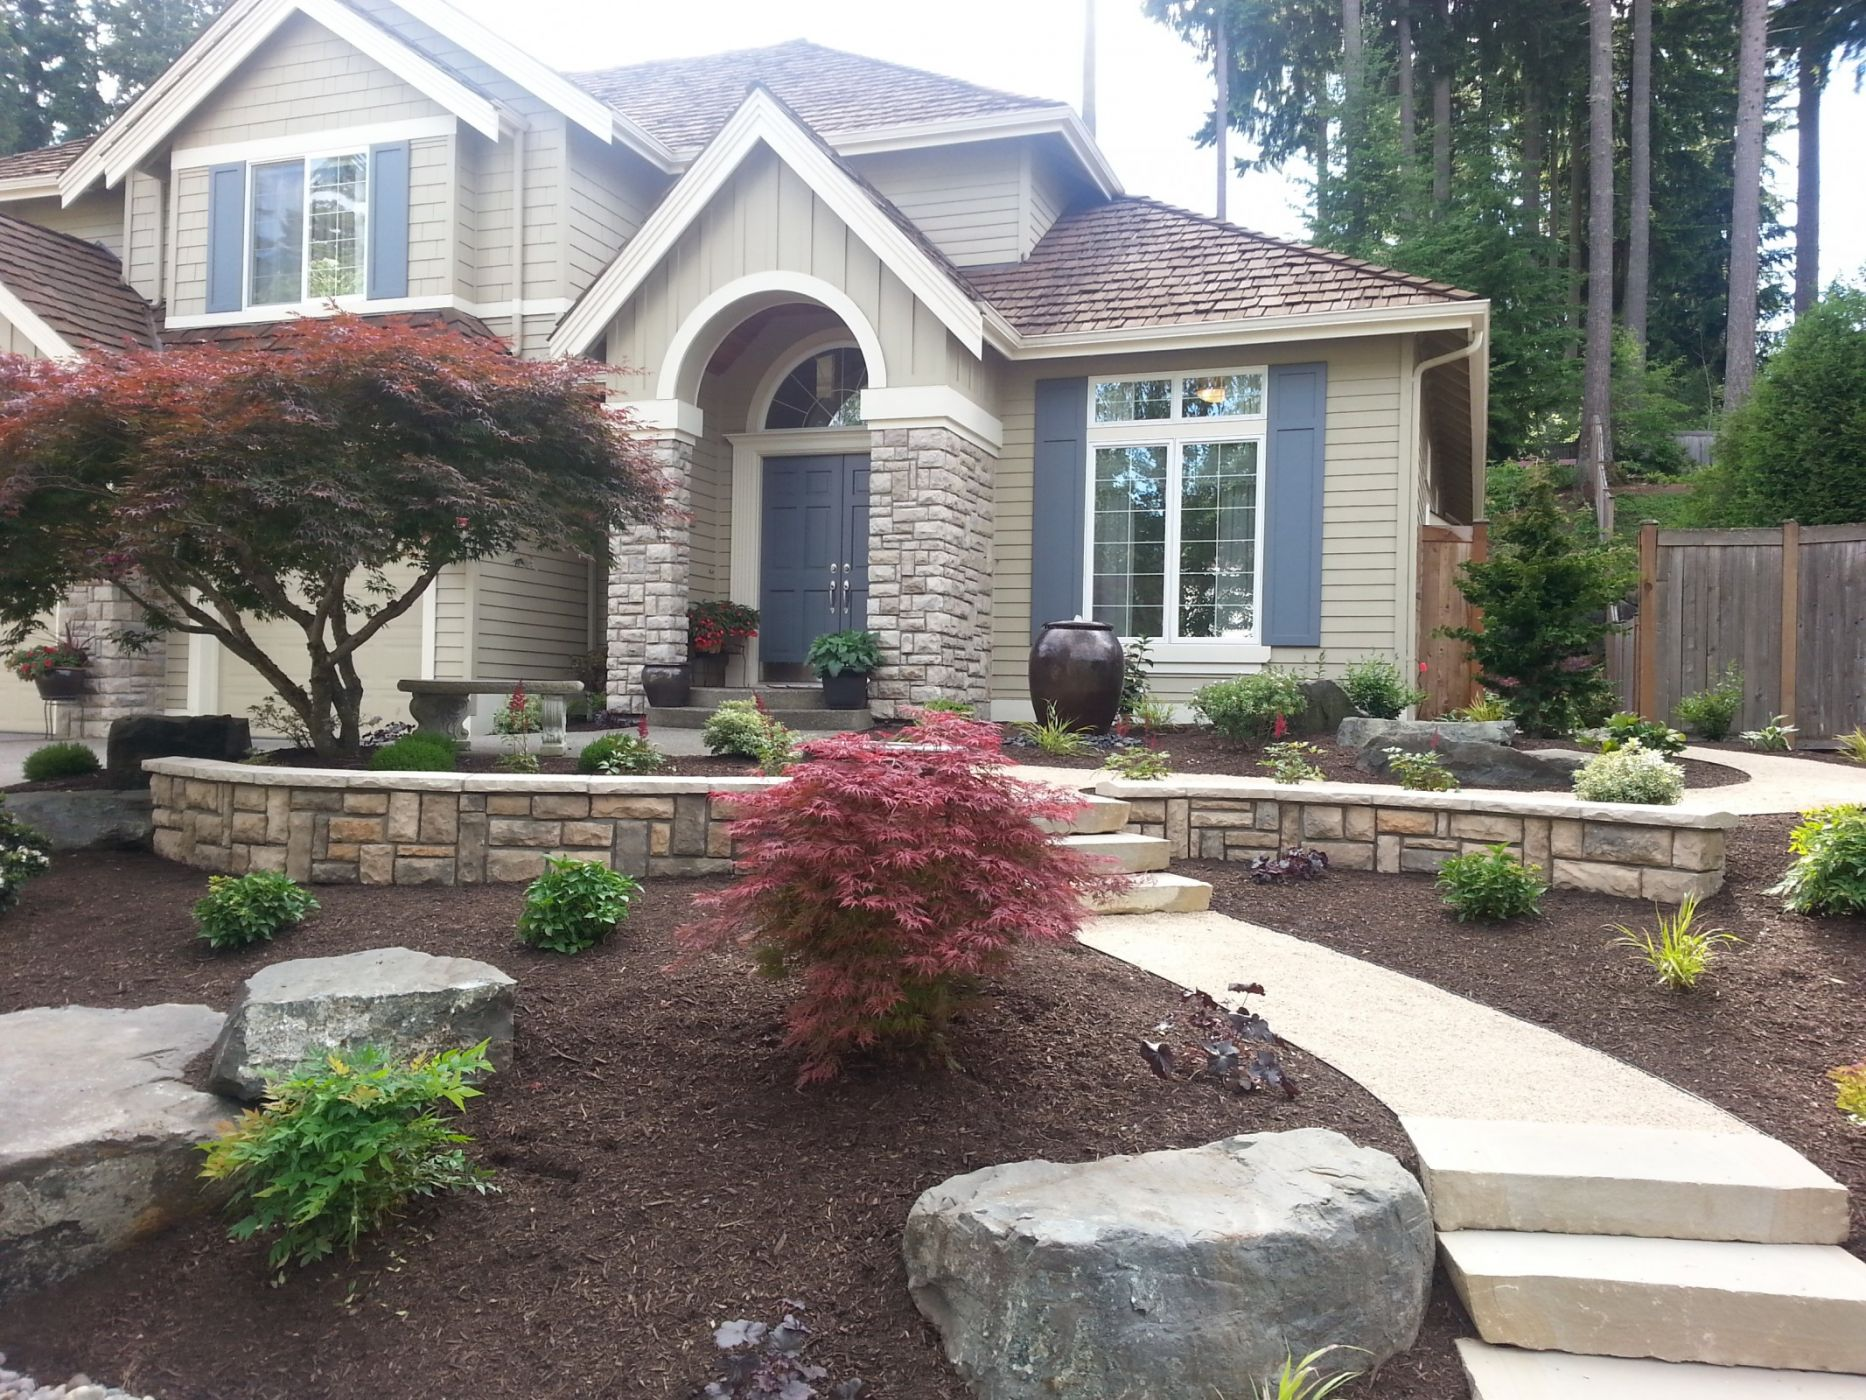 Janika landscaping ideas front yard illinois here for Front lawn design ideas